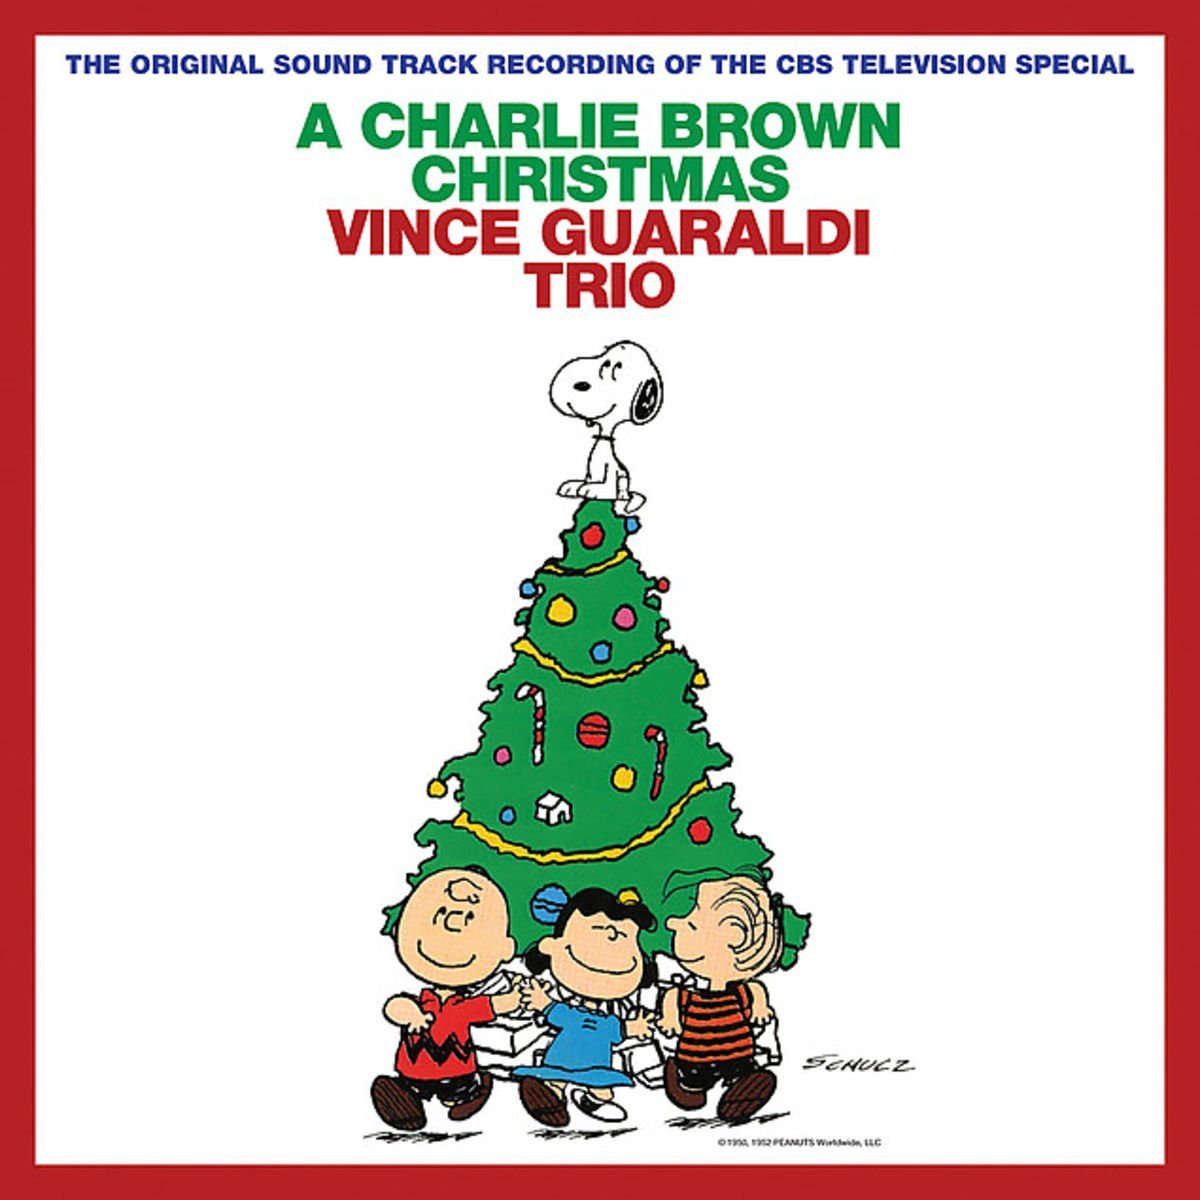 Christmas Time Is Here | Peanuts Wiki | FANDOM powered by Wikia